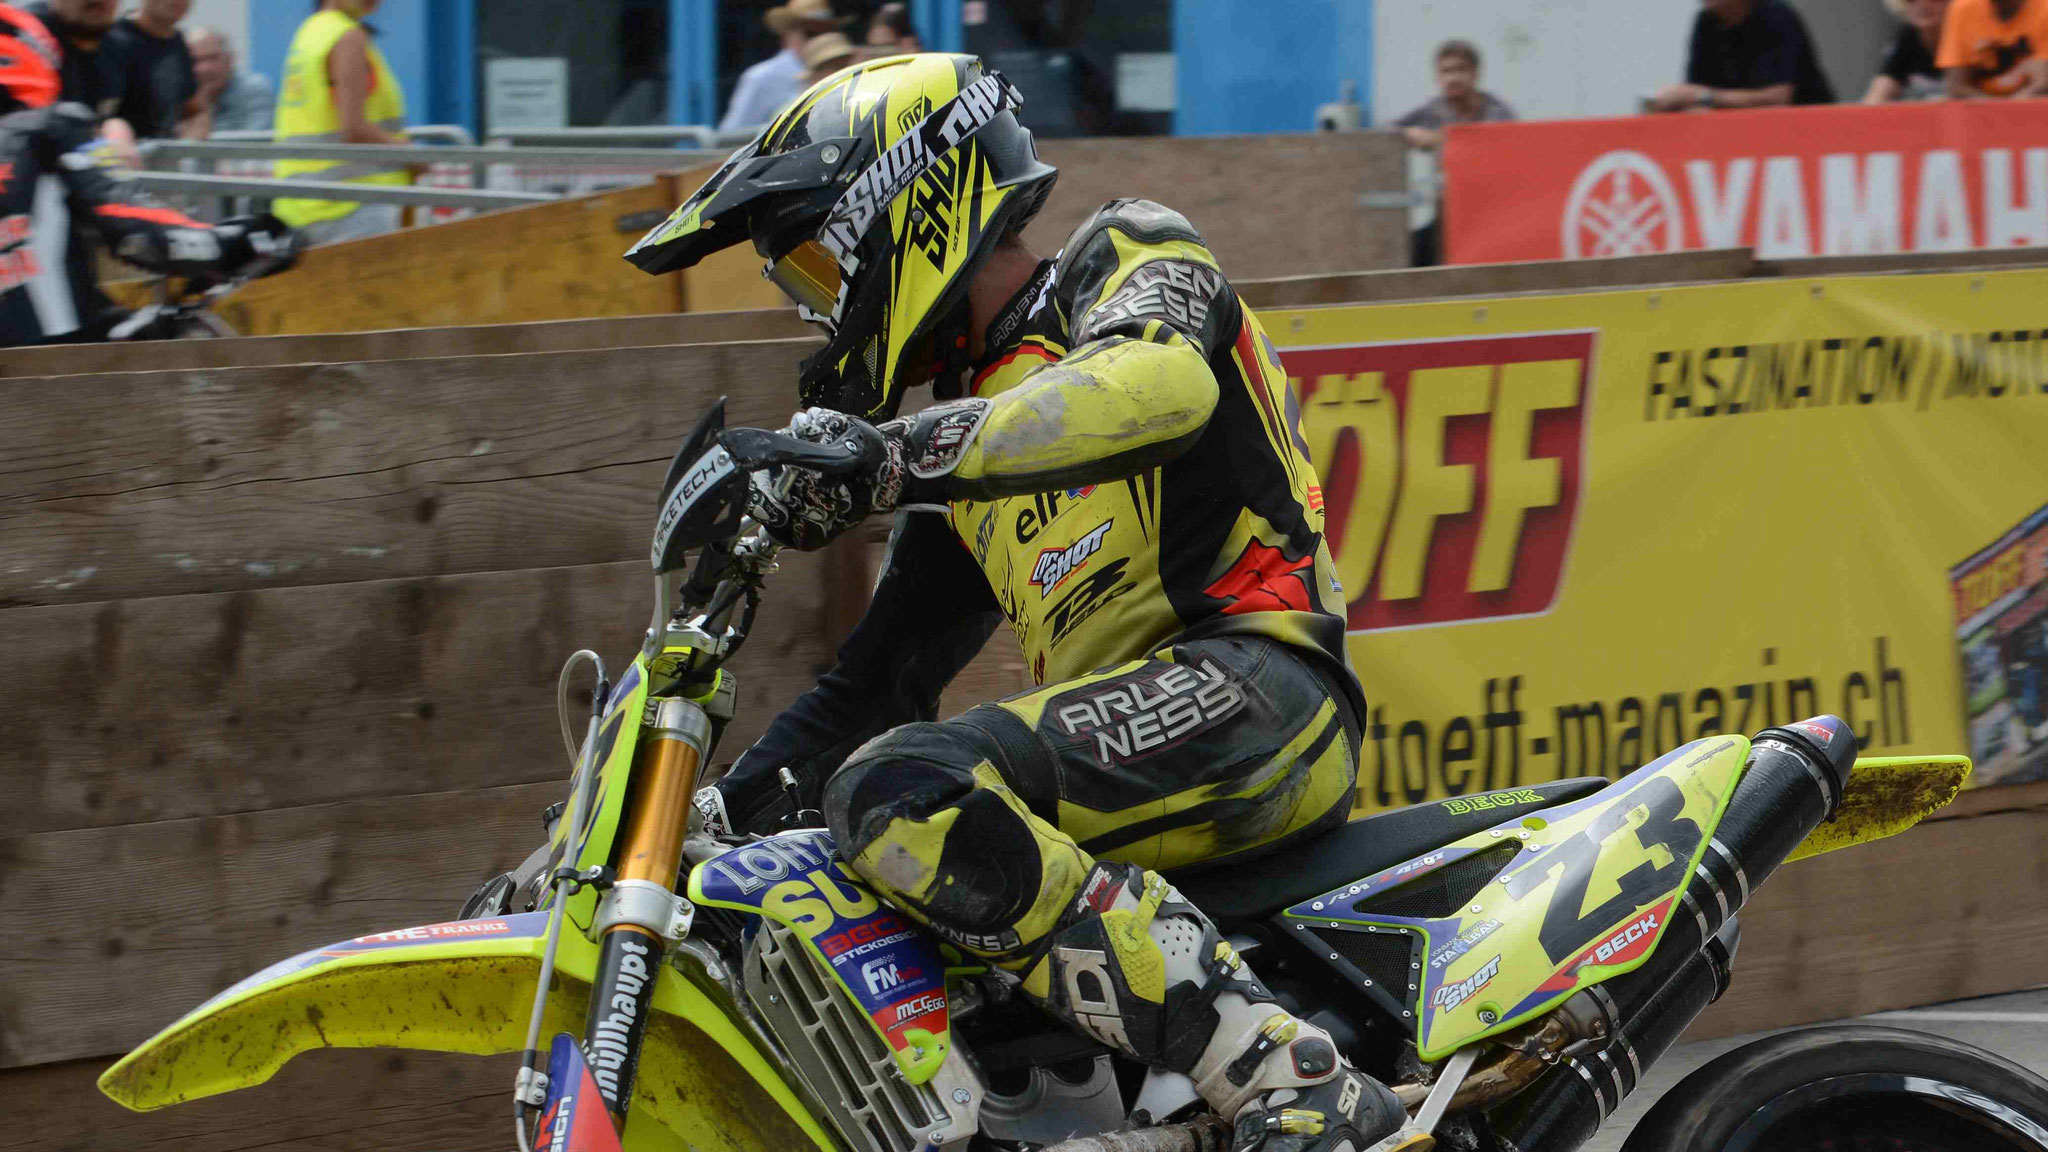 #23 Mathias Beck A - Suzuki RMZ